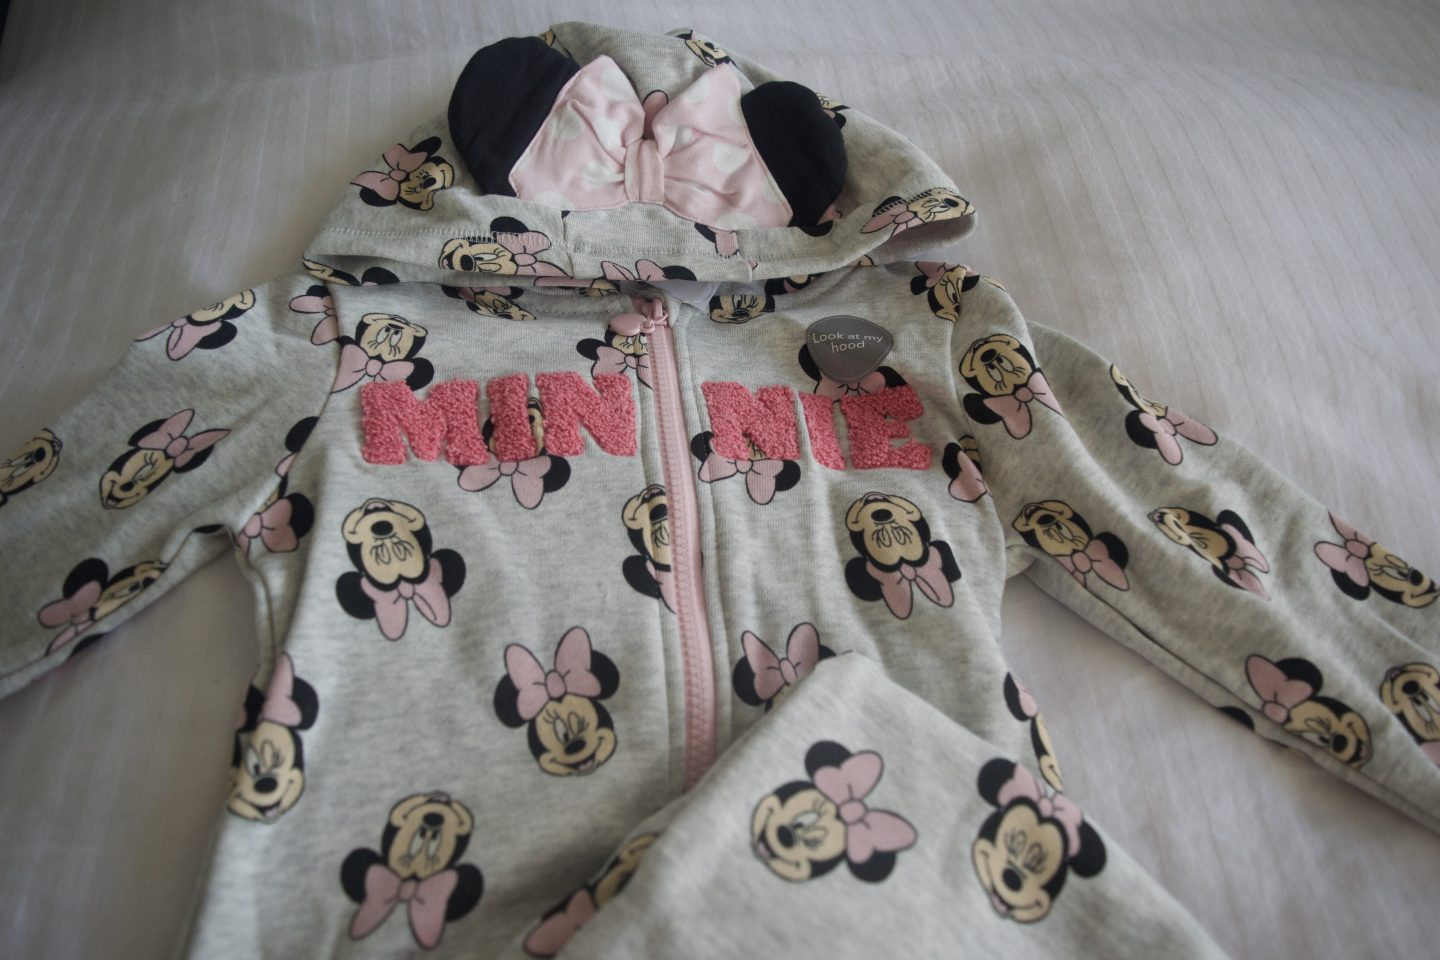 W's Minne Mouse tracksuit included in the Disney reveal box